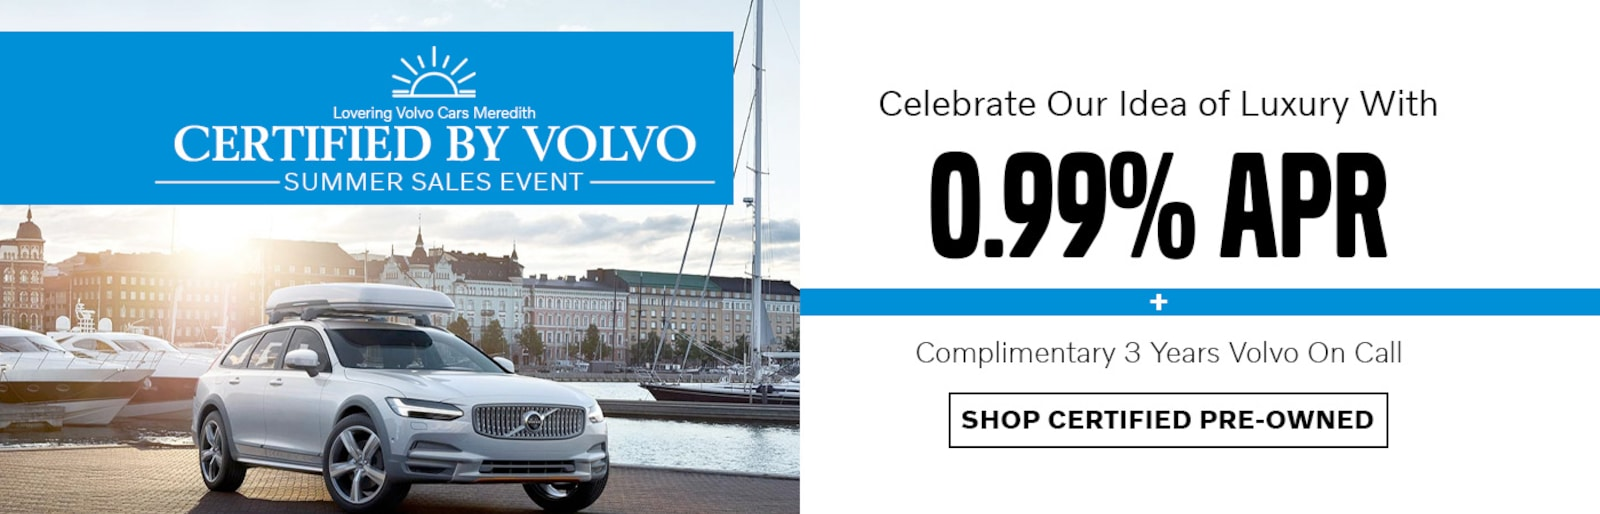 Volvo Dealers Nh >> New Volvo Used Car Dealer In Meredith Nh Lovering Volvo Cars